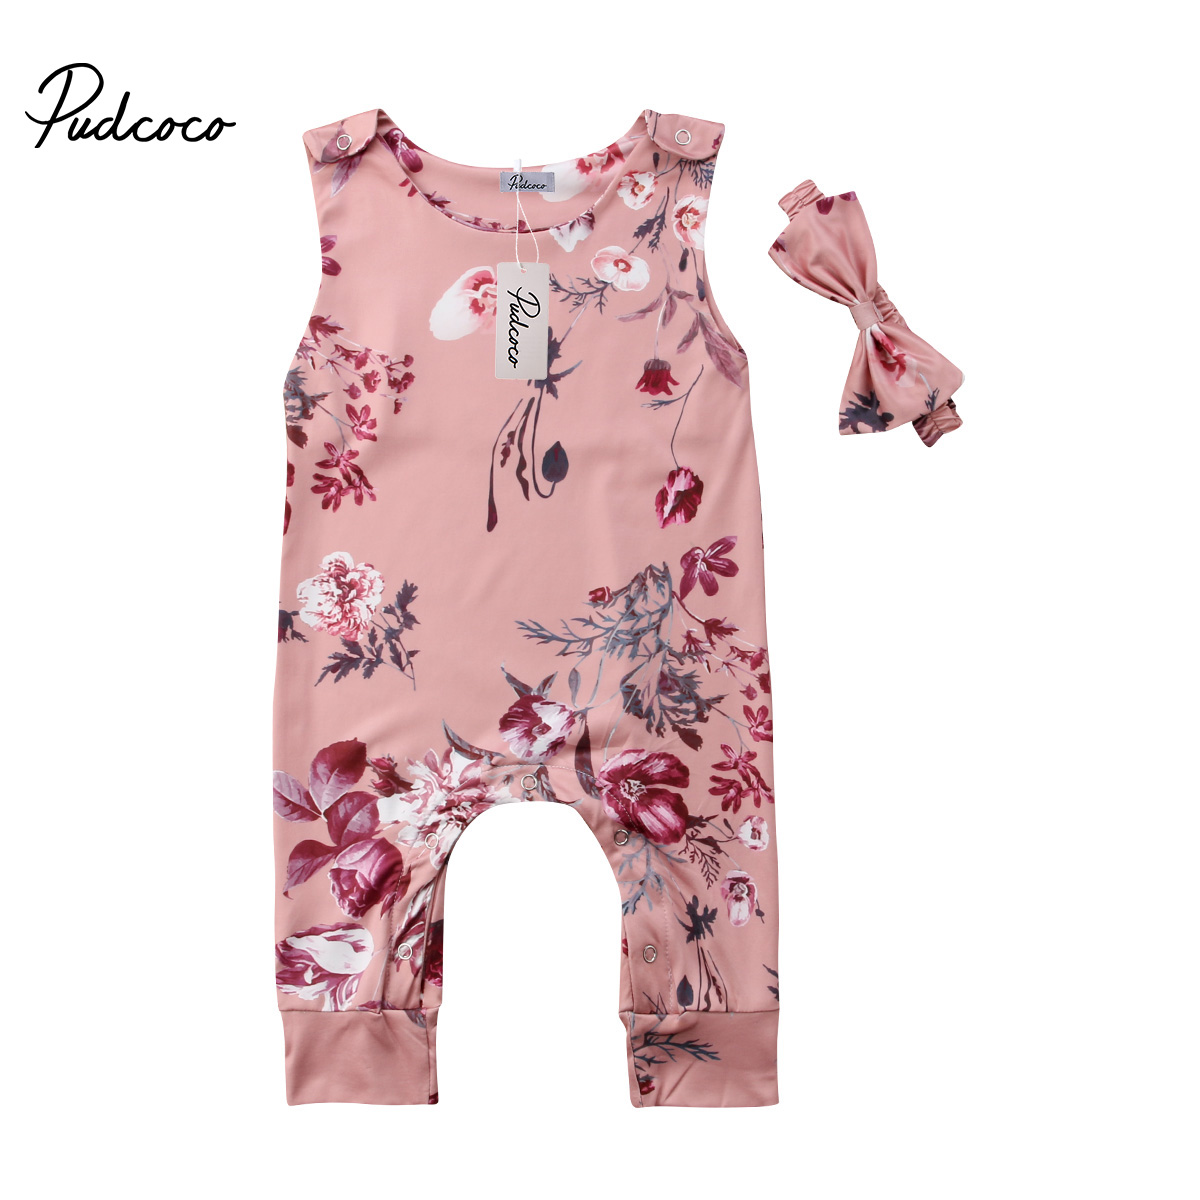 2018 Brand New Toddler Infant Newborn Kids Baby Boy Girl   Romper   Headband 2Pcs Sets Sleeveless Jumpsuit Children Summer Clothing